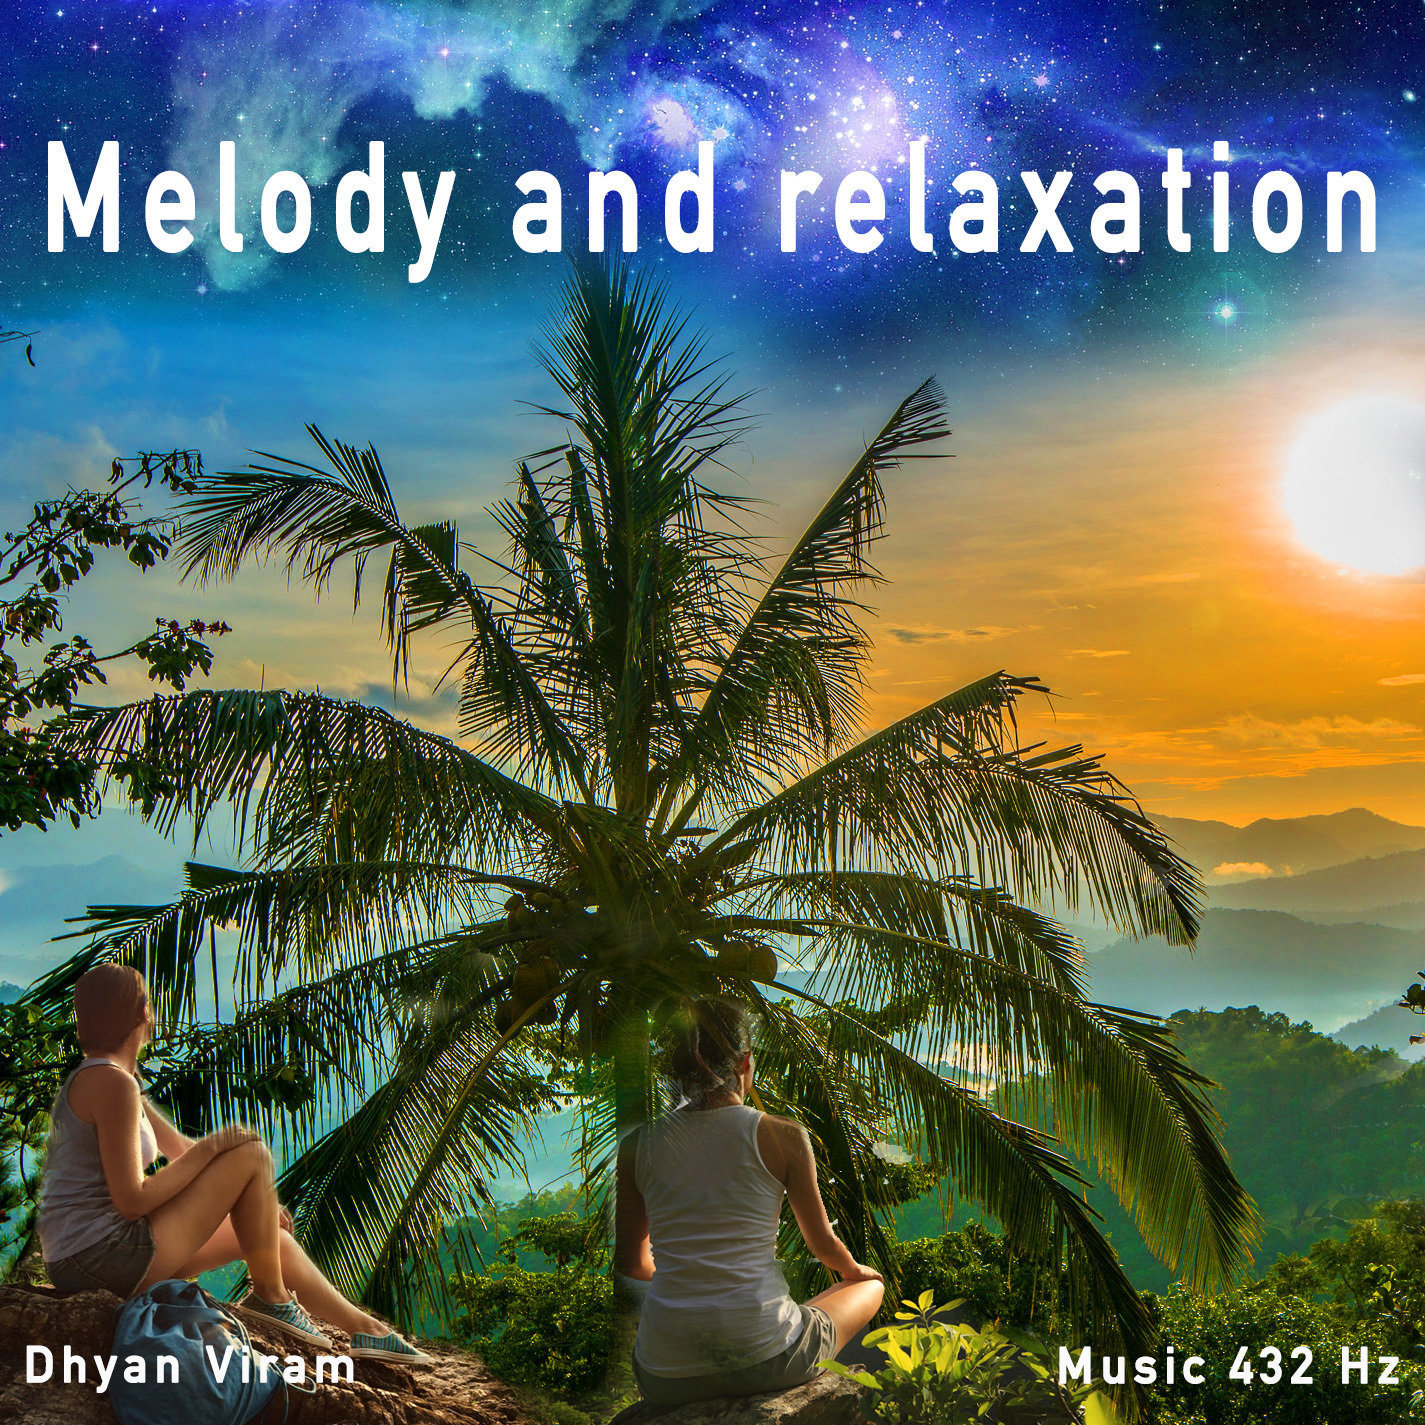 Melody and relaxation